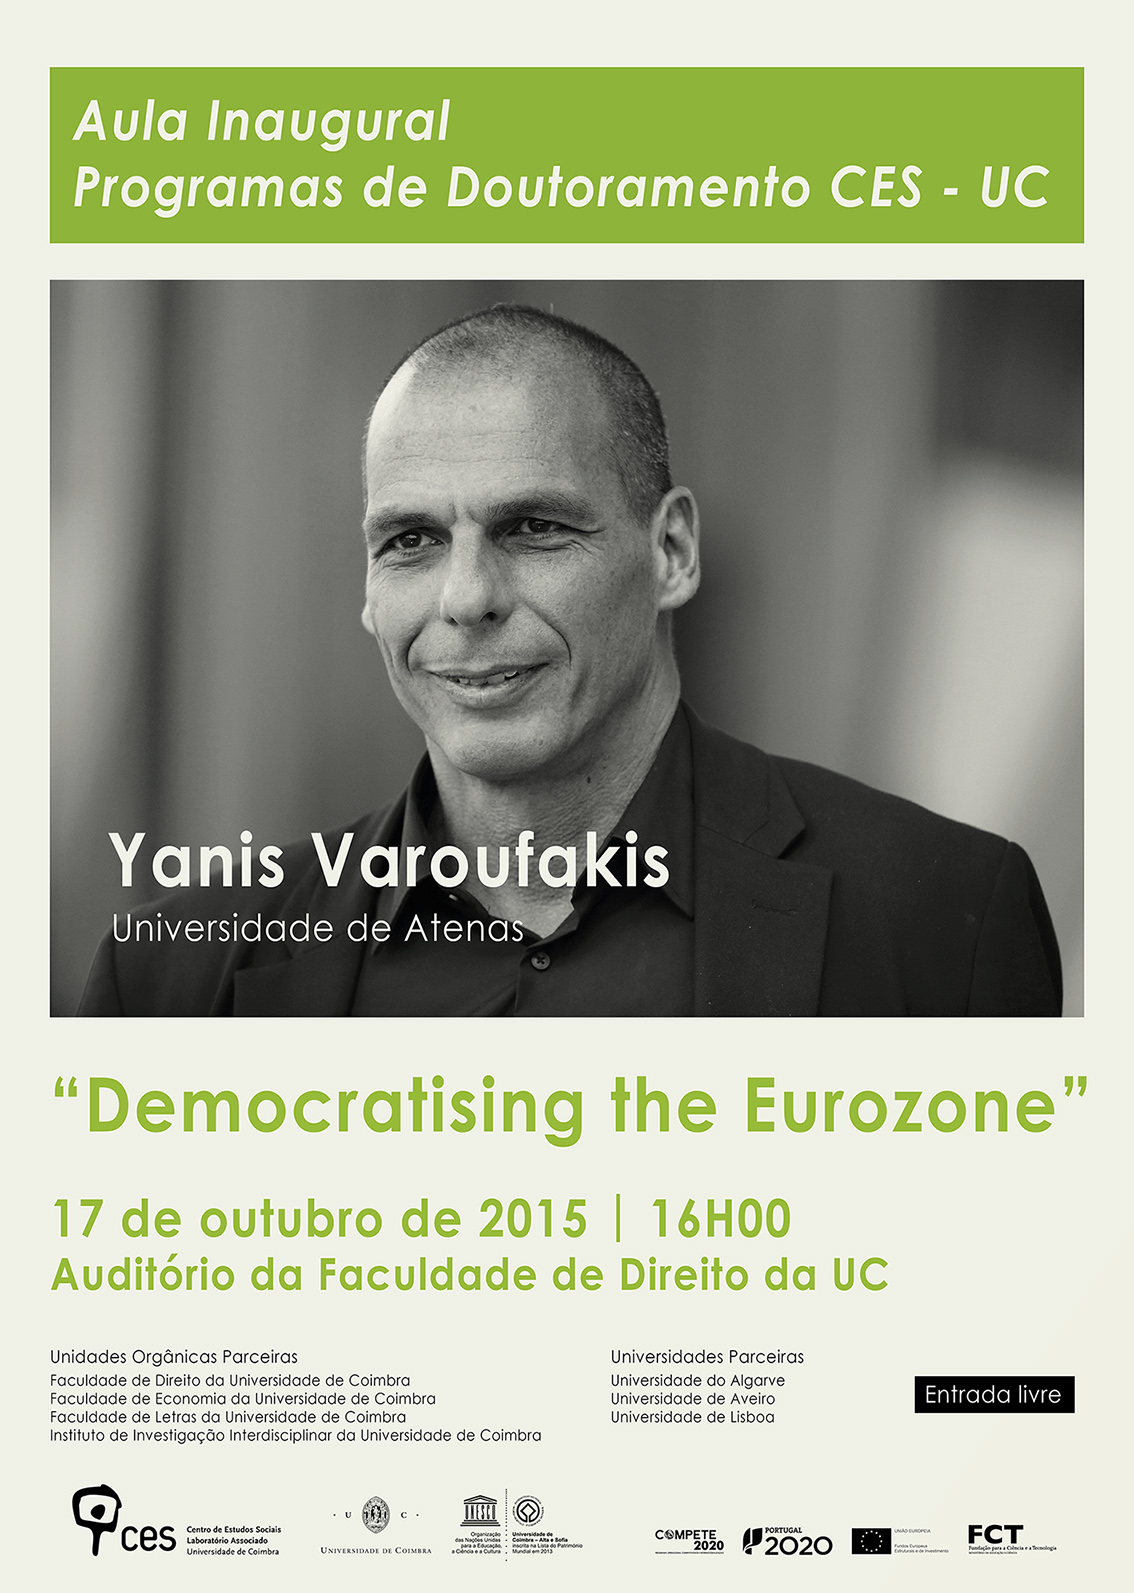 "Democratising the Eurozone<span id=""edit_12672""><script>$(function() { $('#edit_12672').load( ""/myces/user/editobj.php?tipo=evento&id=12672"" ); });</script></span>"